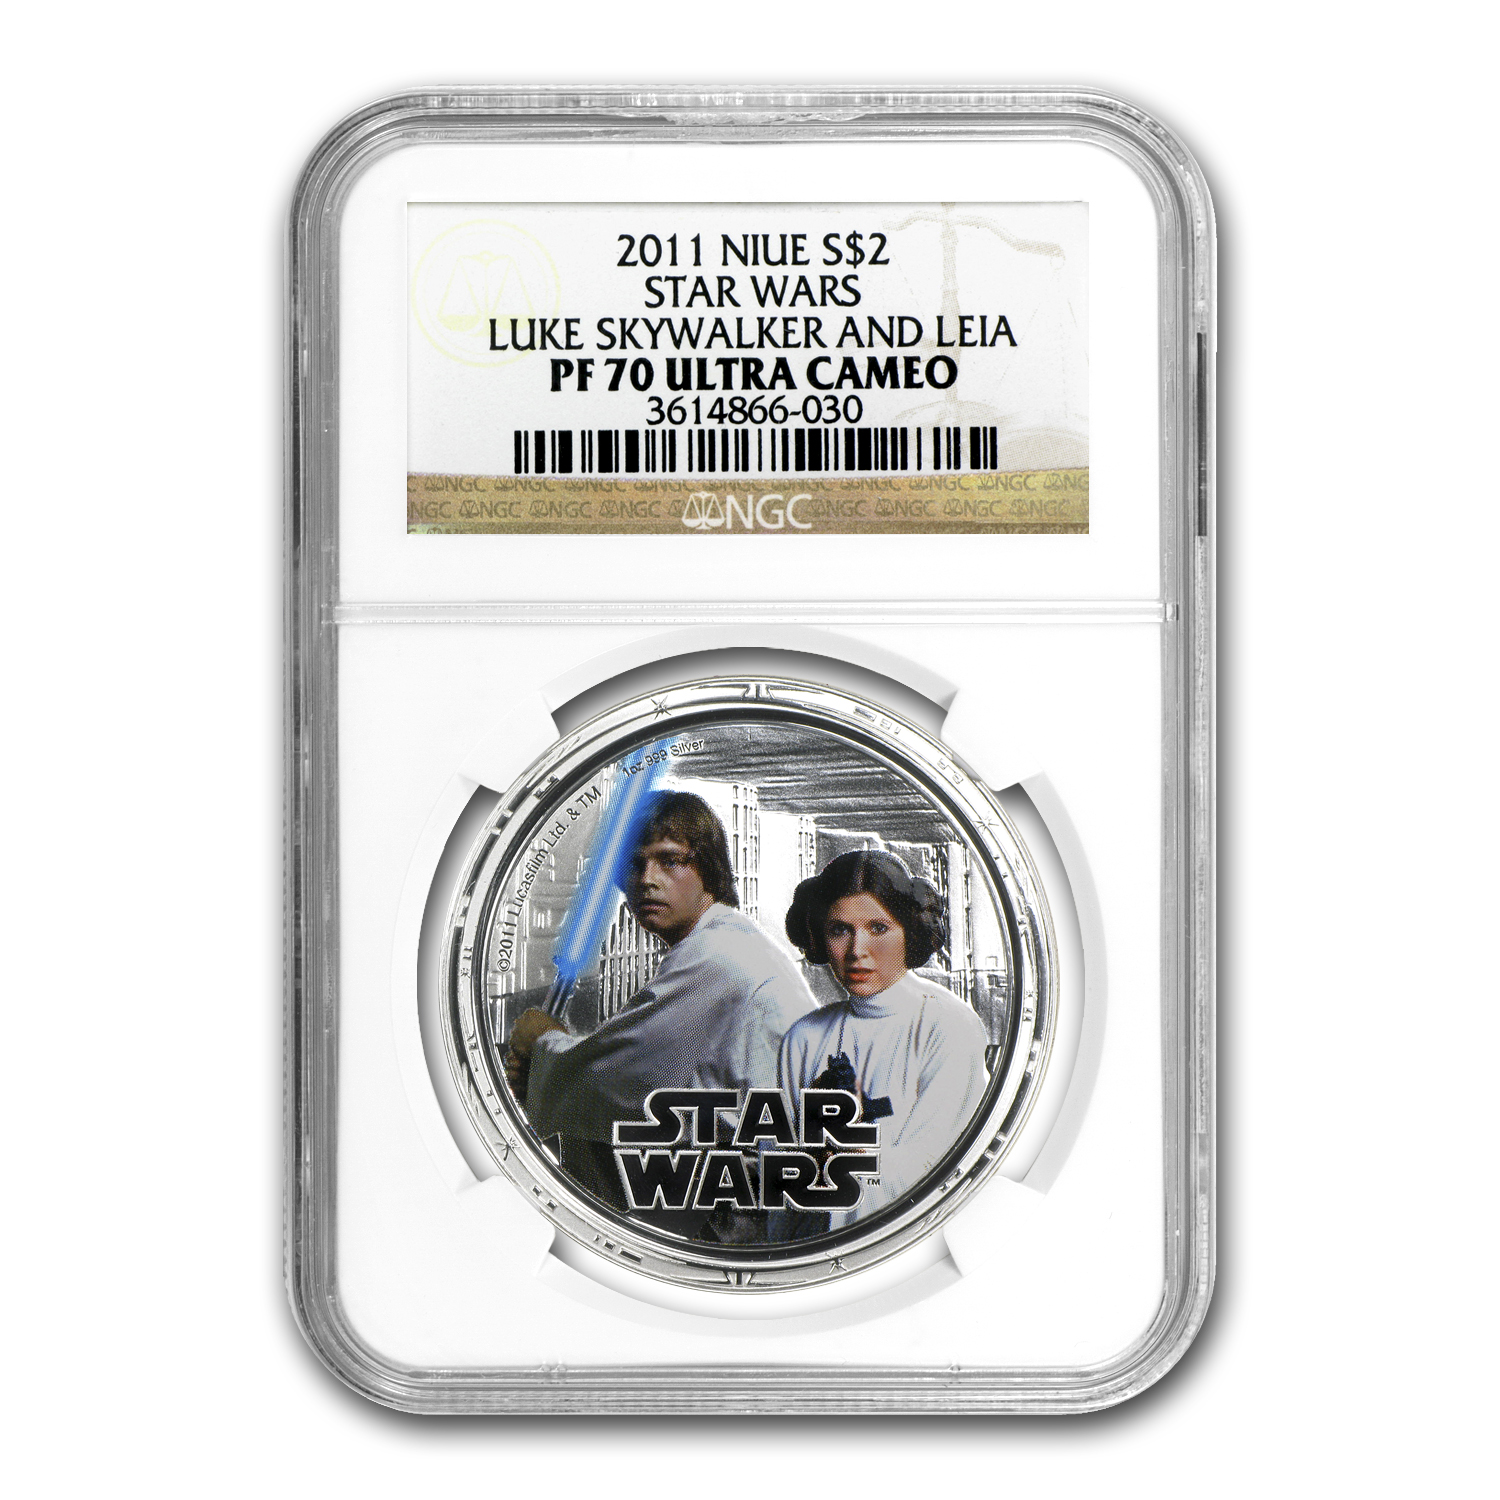 2011 Niue 1 oz Silver $2 Star Wars Luke Skywalker/Leia PF-70 NGC